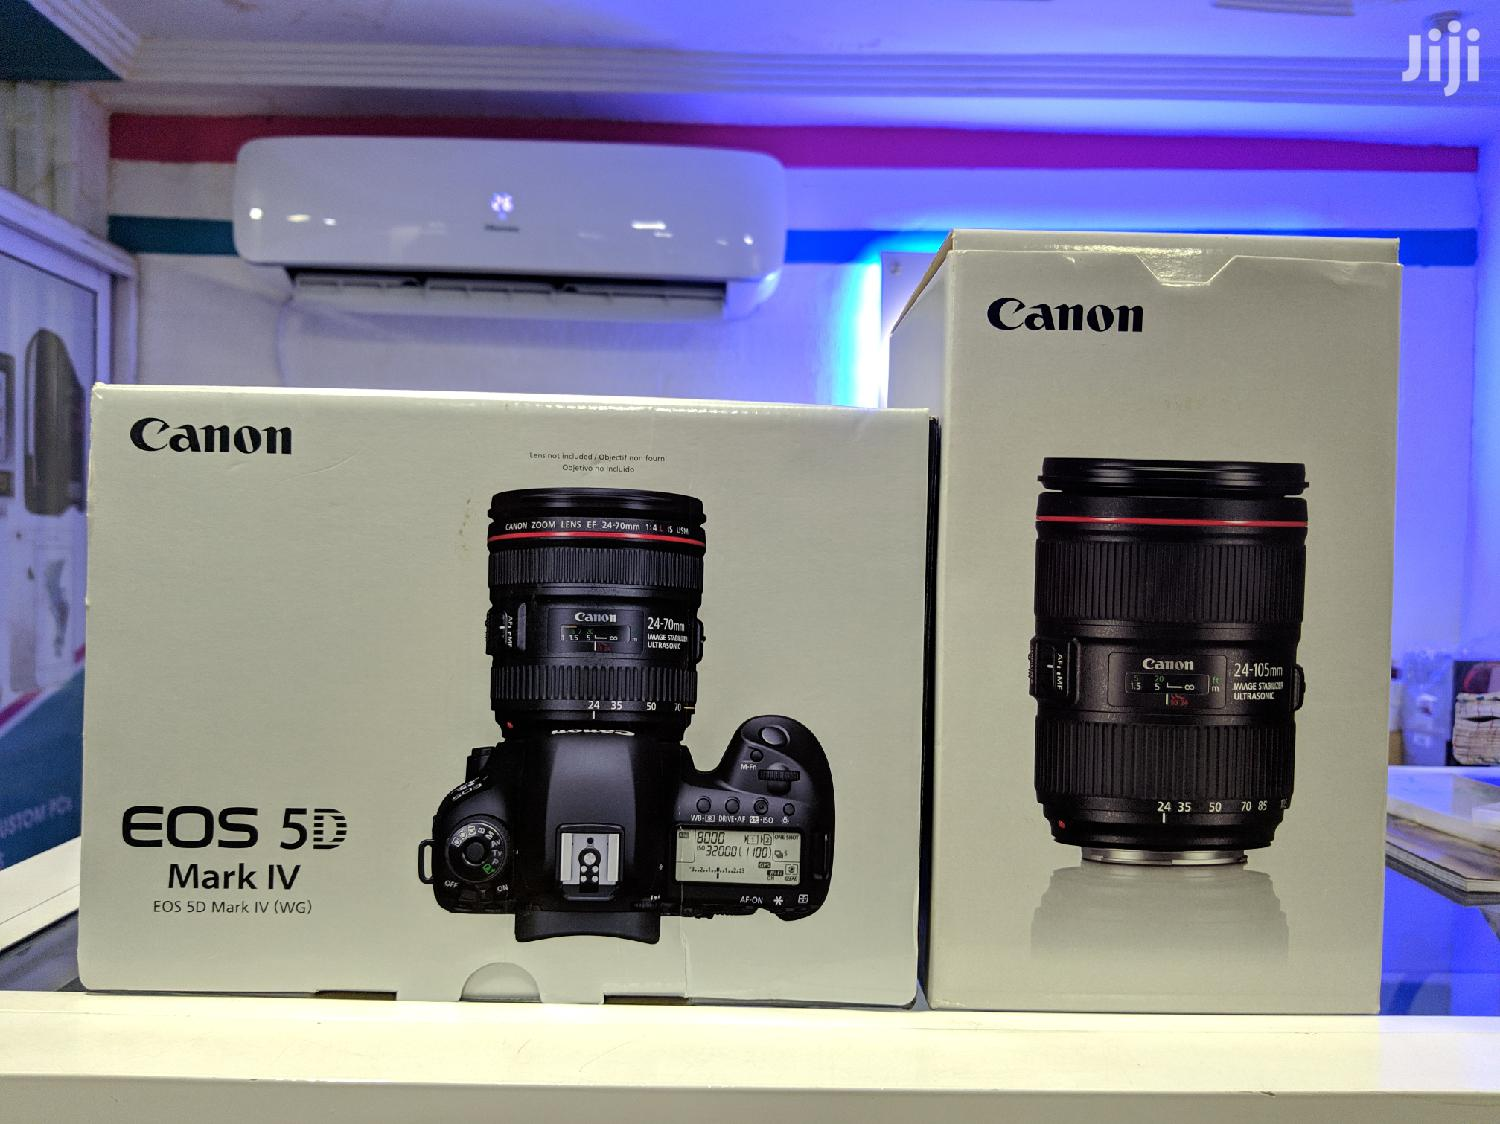 Canon EOS 5D Mark IV Full Frame Digital Ef24-105 Mm F/4F | Photo & Video Cameras for sale in Darkuman, Greater Accra, Ghana